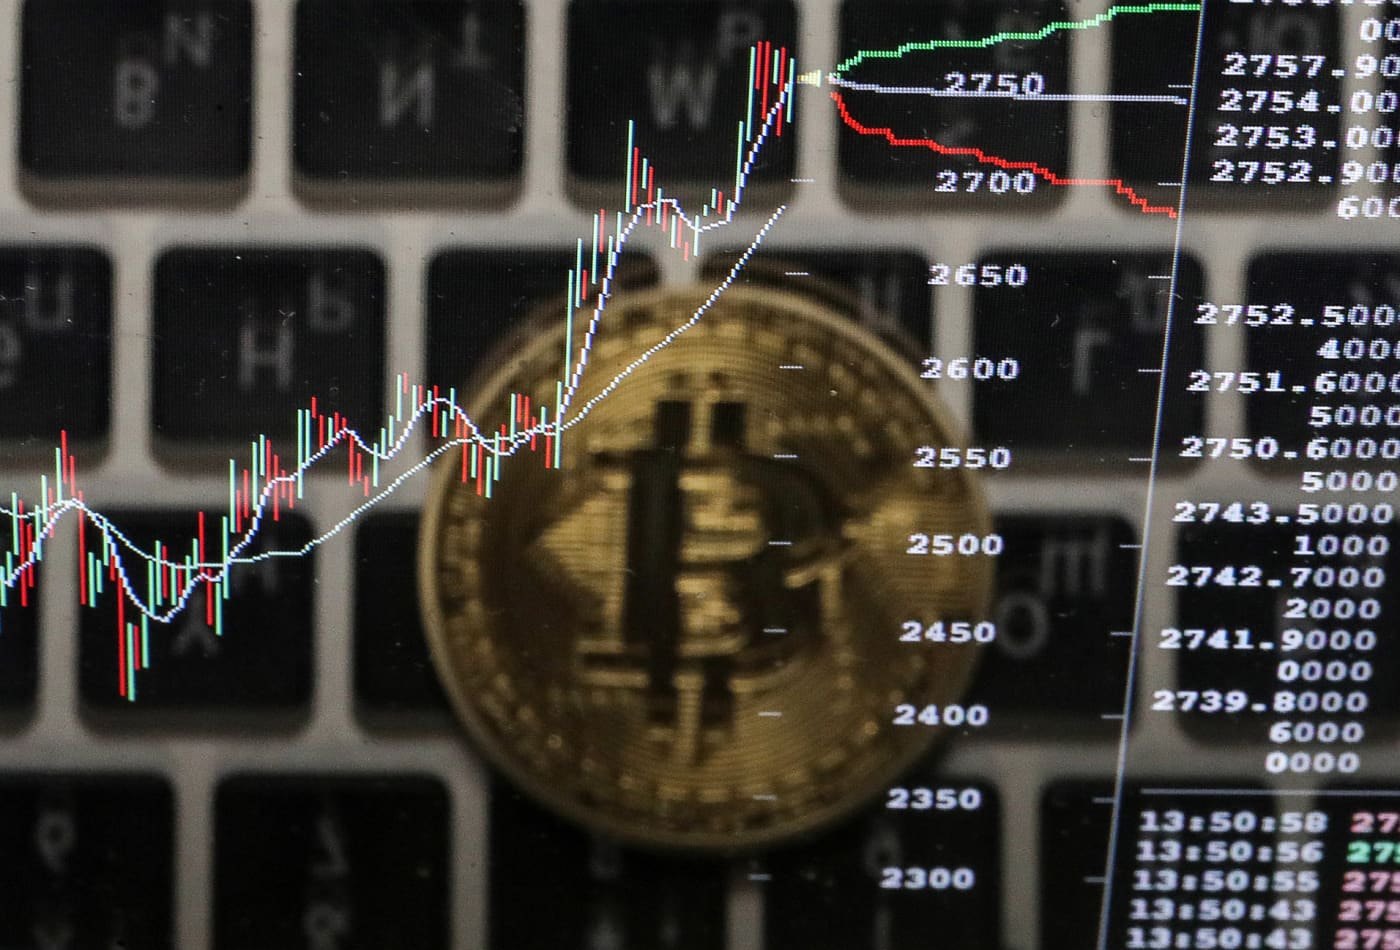 Bitcoin surges to record above $6,400 after CME announces launch of futures for digital currency